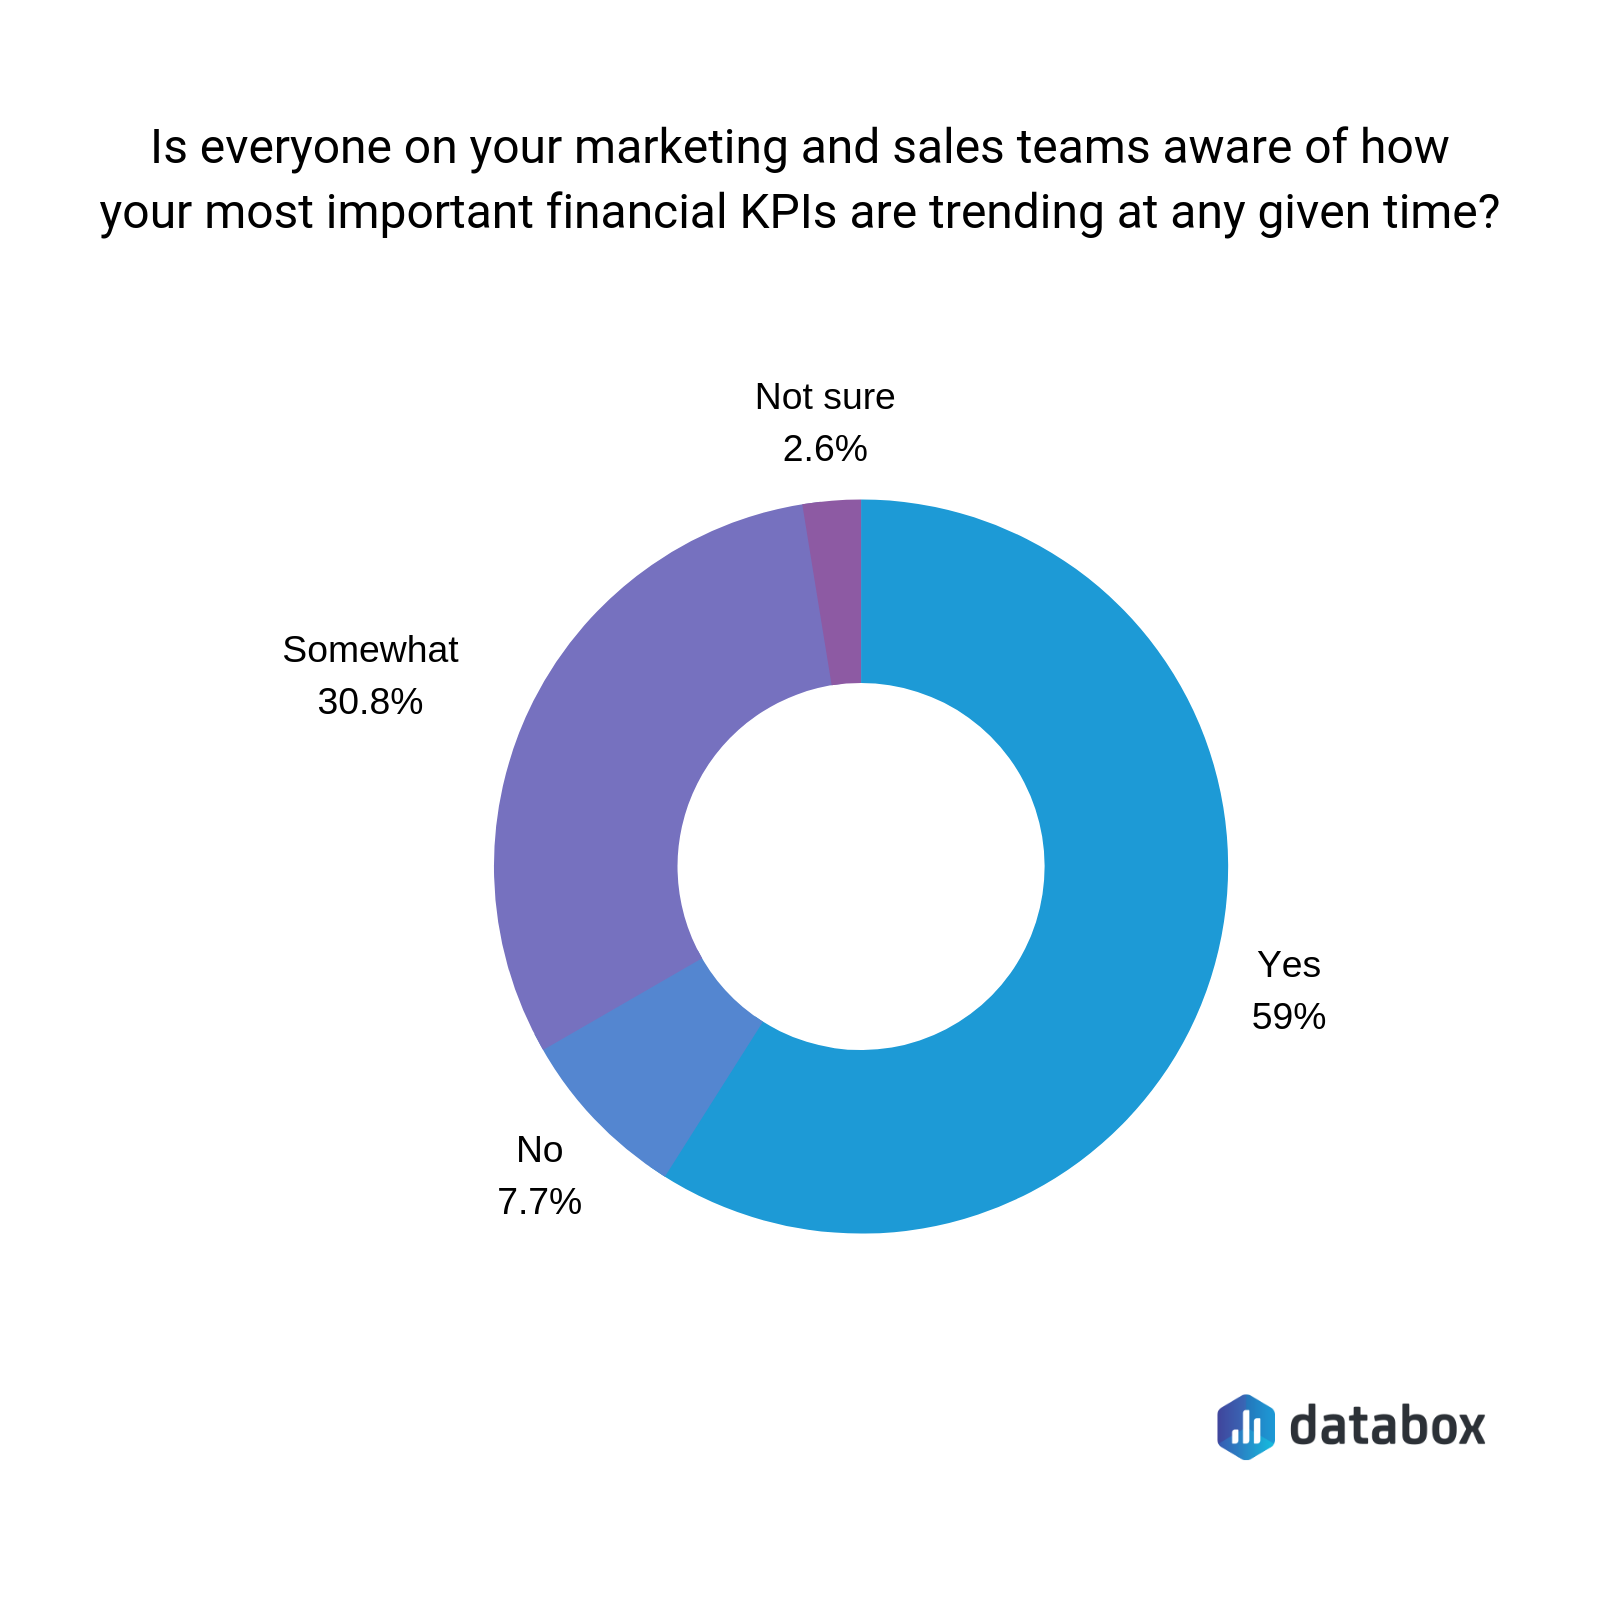 sales and marketing team awareness of financial KPIs